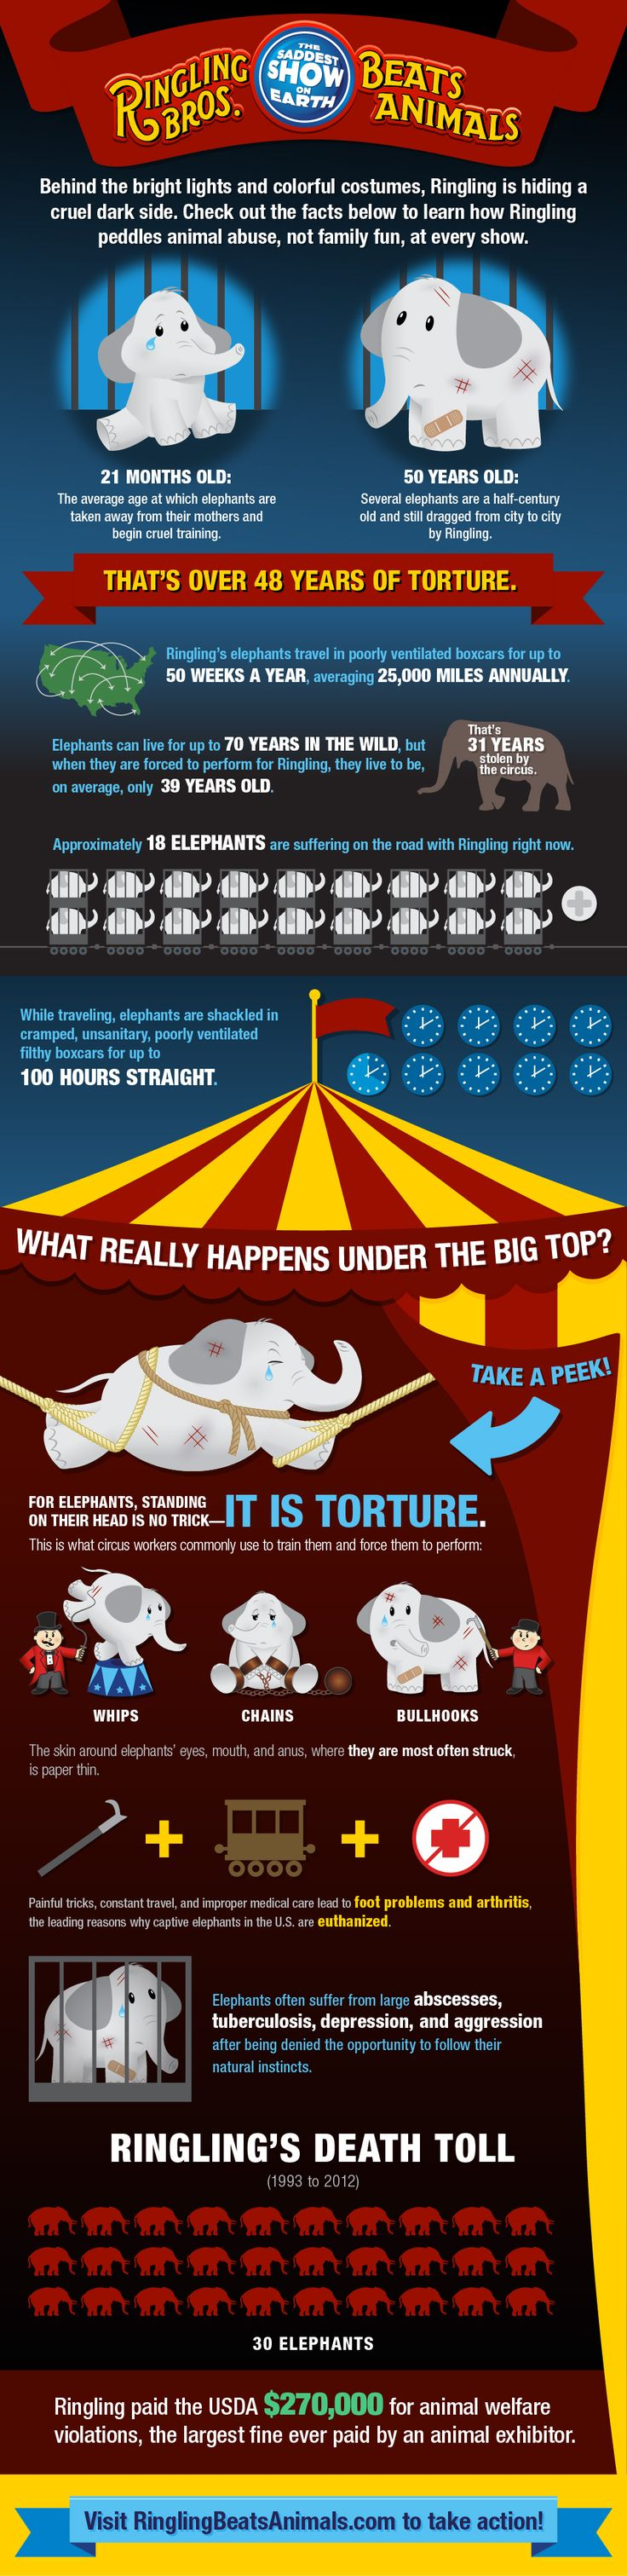 Ringling Brother's Circus BEATS their ANIMALS. It's a cruel industry of slavery that MUST be stopped. See how here: http://www.peta2.com/lifestyle/infographics/